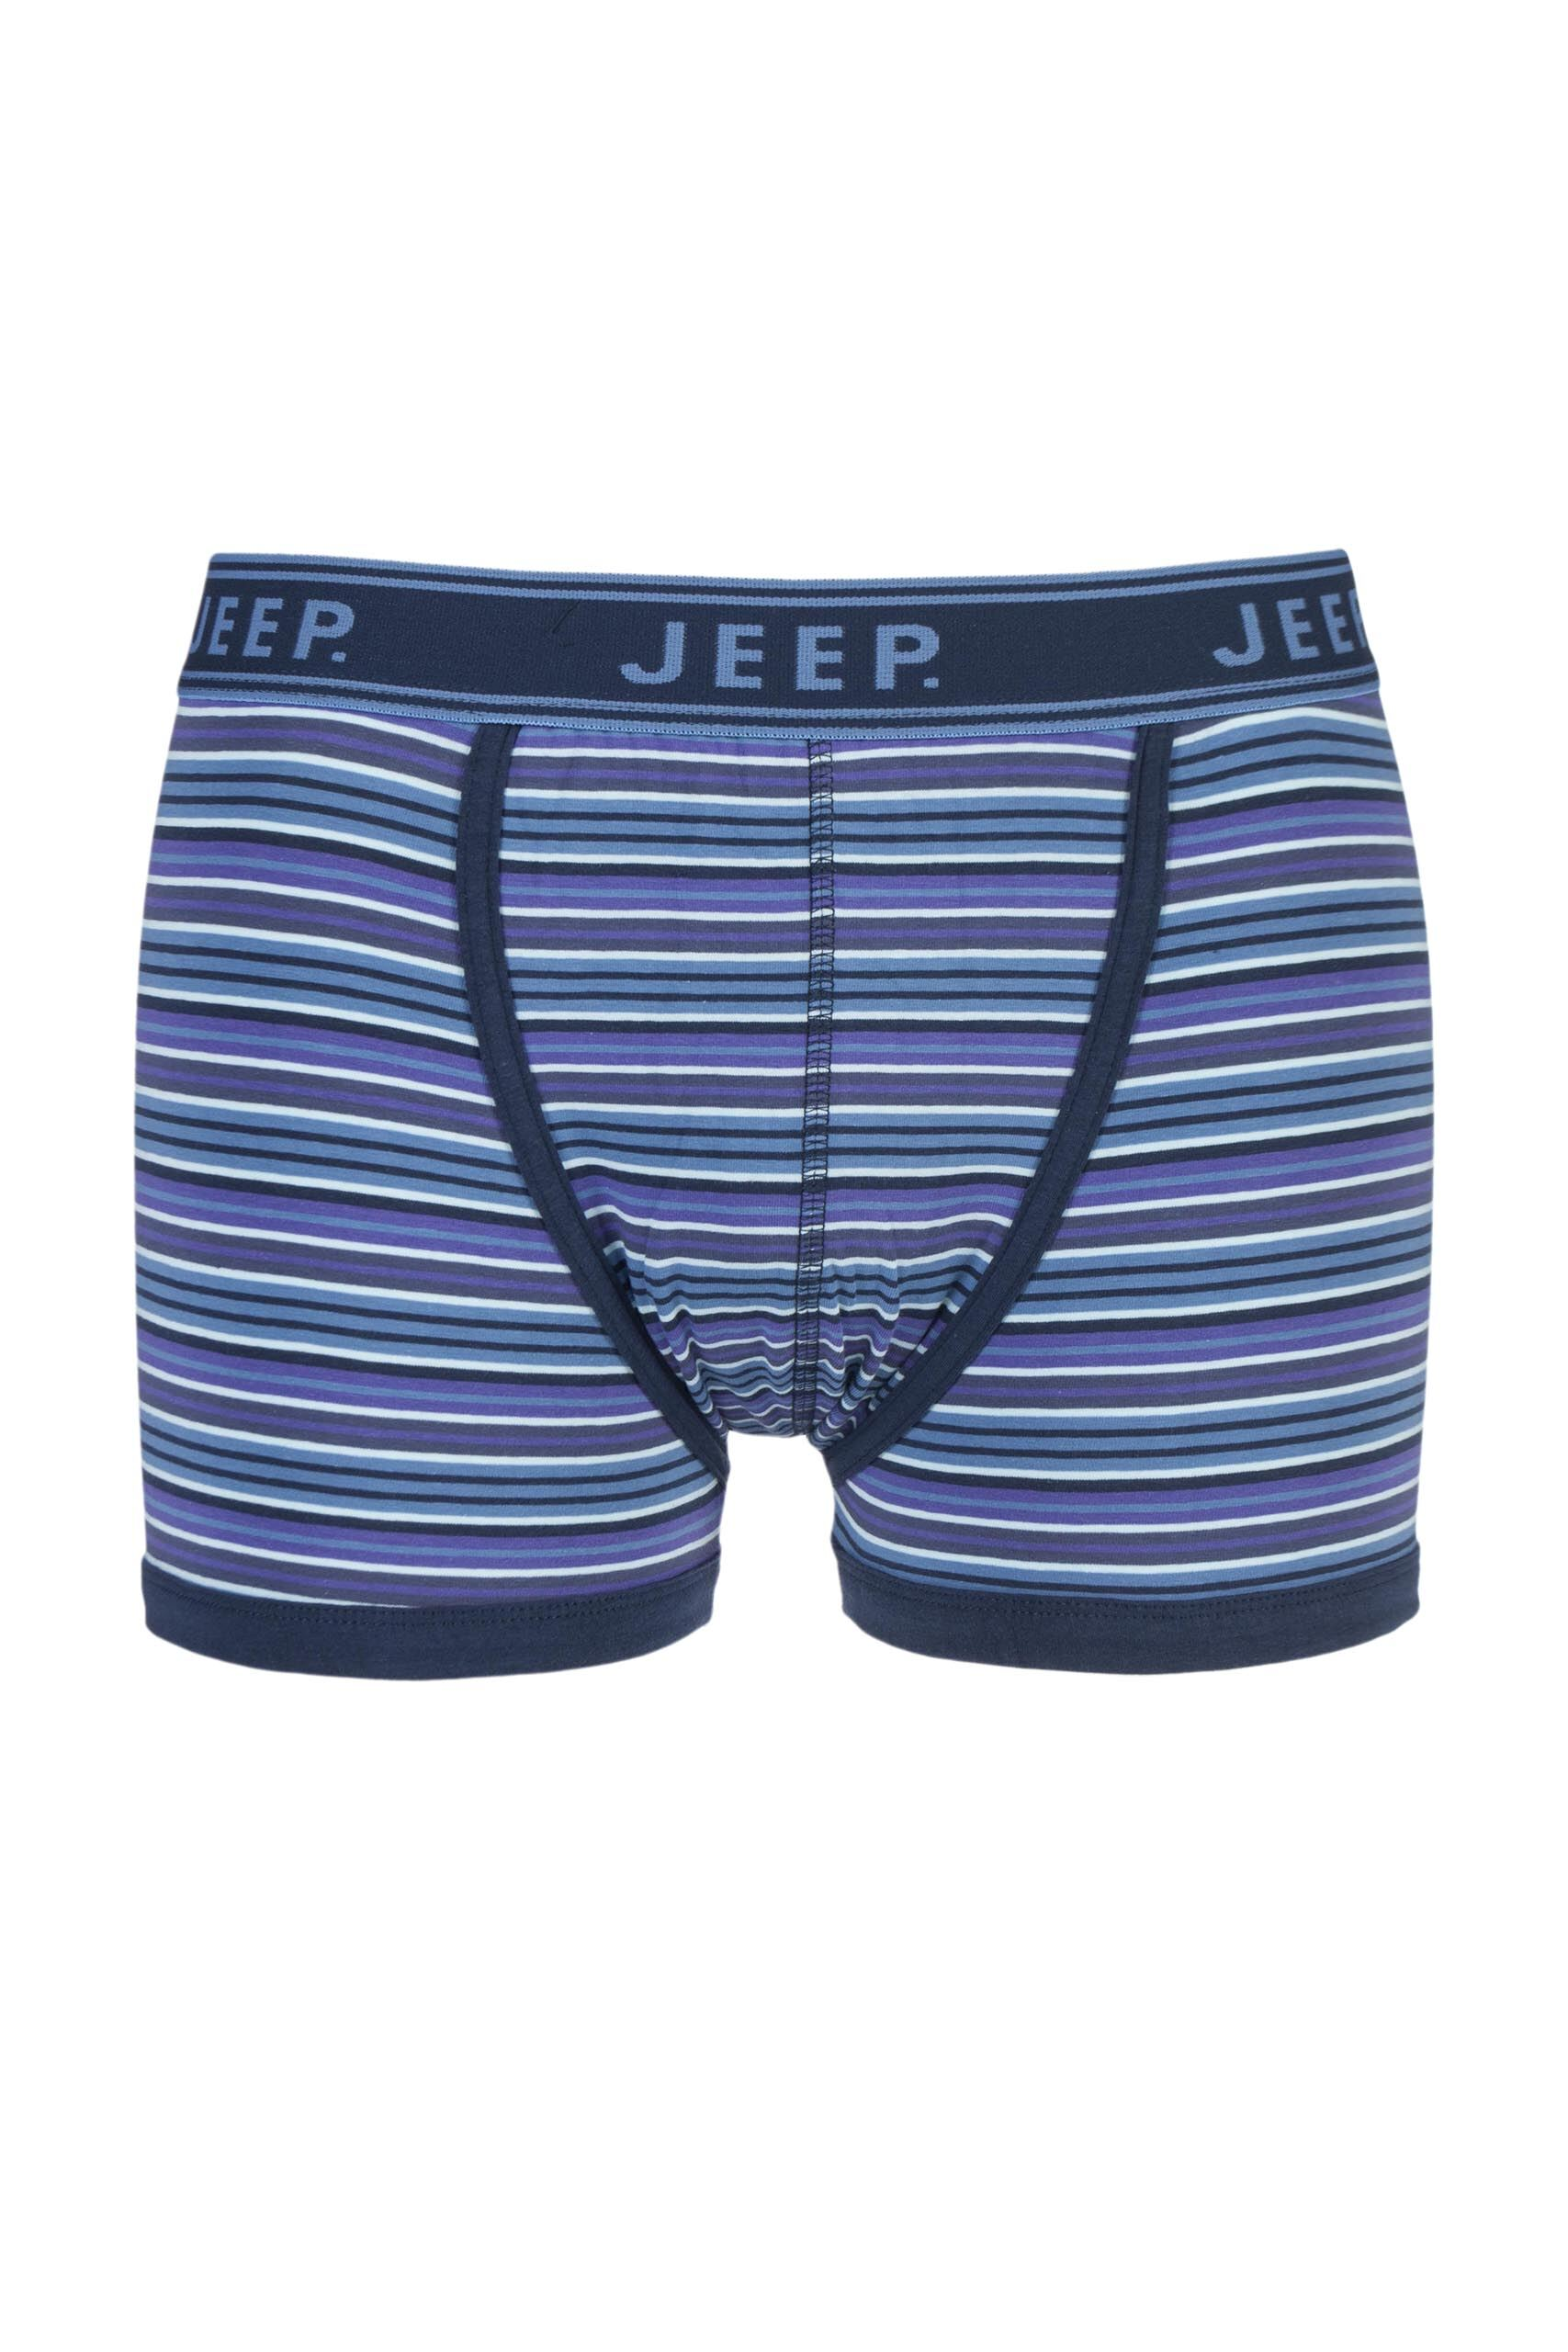 Image of 1 Pack Blue Spirit Cotton Fine Stripe Trunks In Blue Men's Small - Jeep